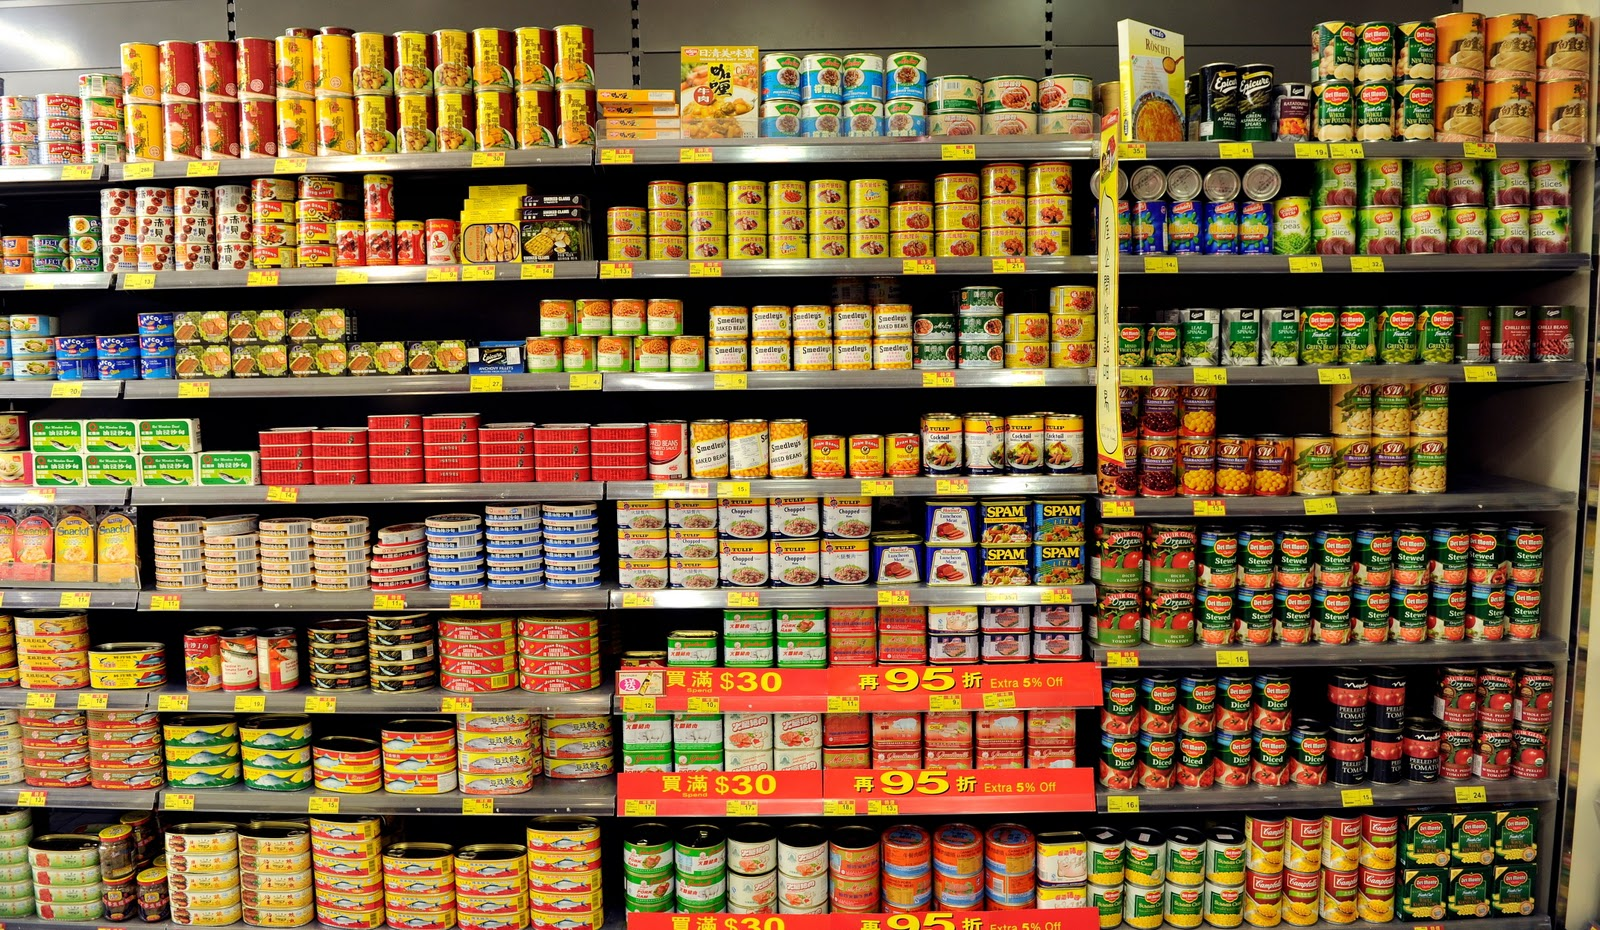 City delights: City delights 37 - central wellcome supermarket